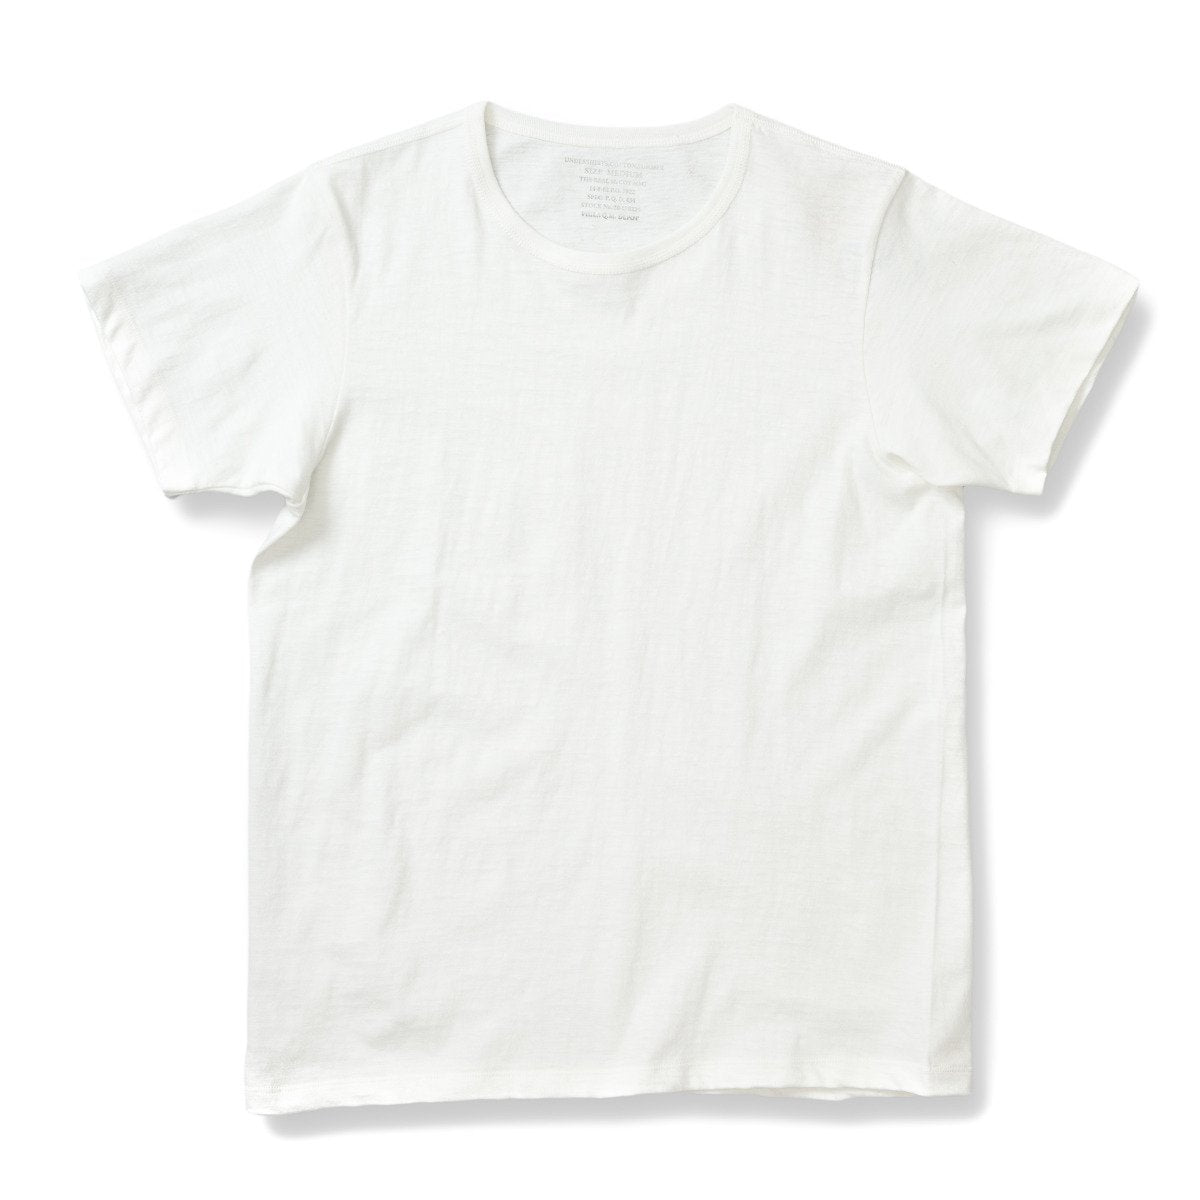 Summer Cotton Undershirt